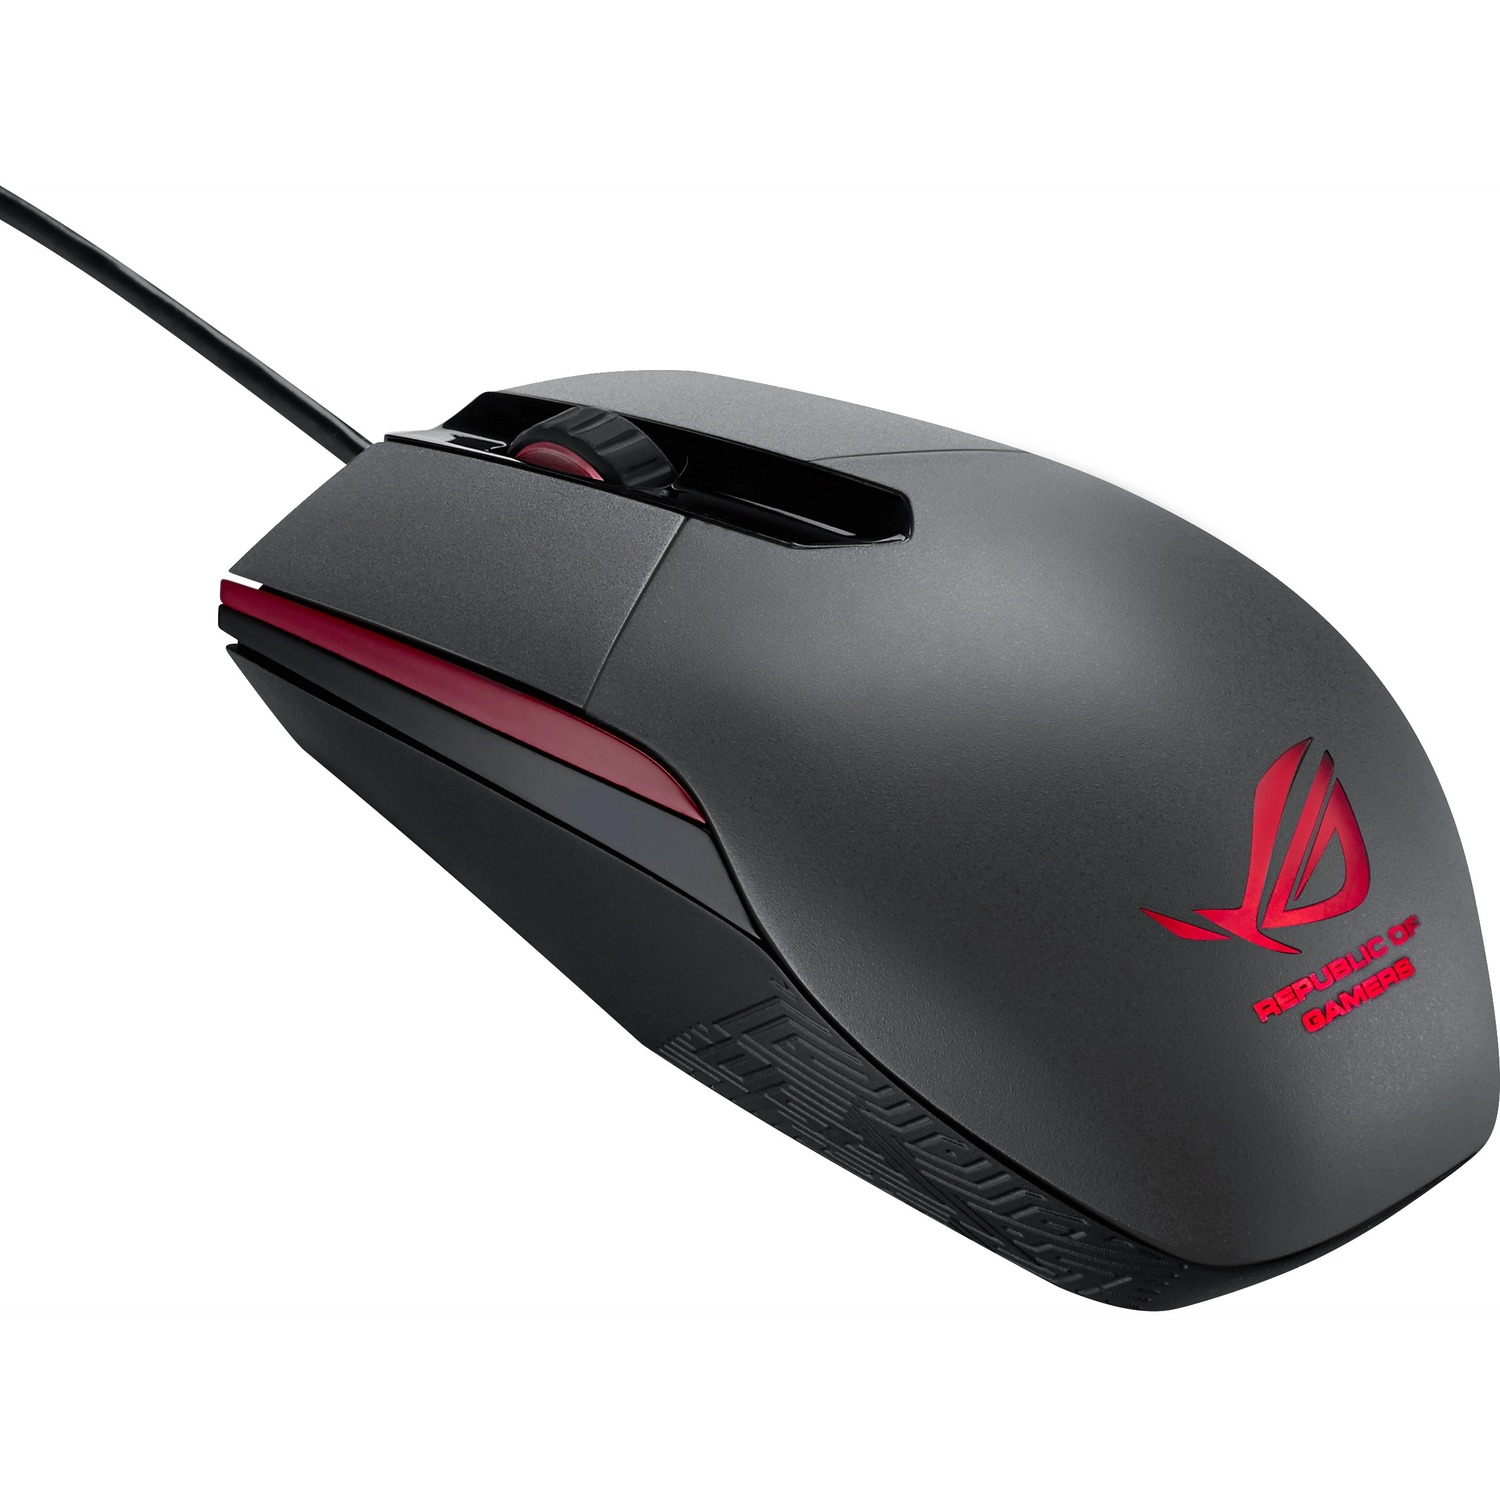 Asus Sica Mouse - Optical - Cable - ROG